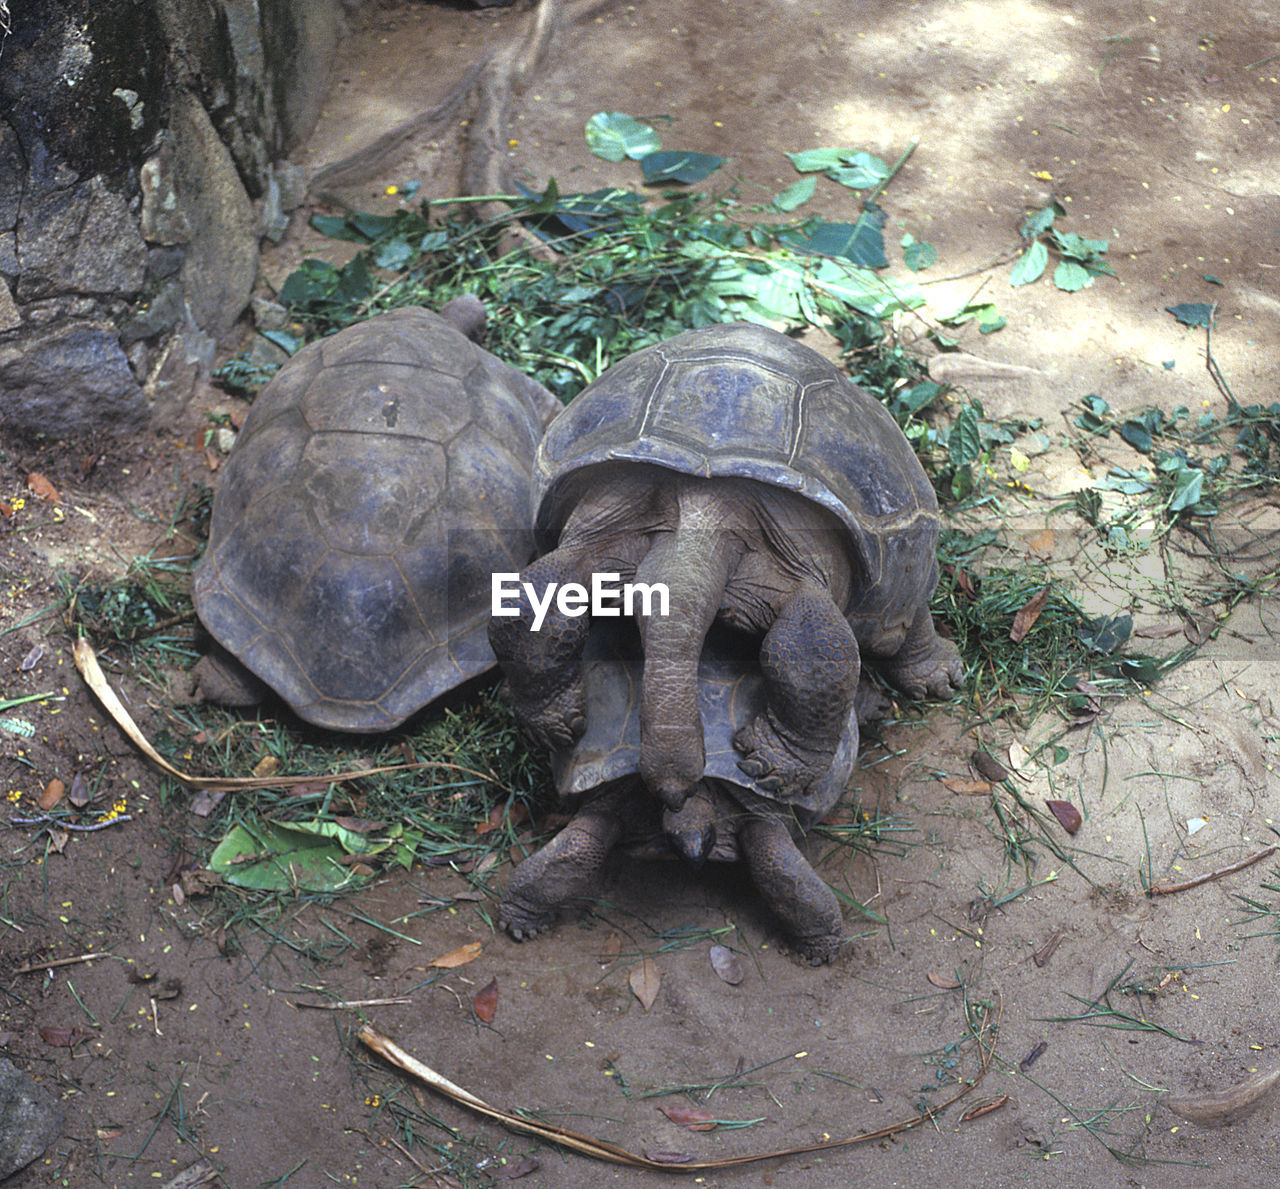 high angle view, day, animals in the wild, animal themes, no people, field, outdoors, tortoise, growth, nature, tortoise shell, close-up